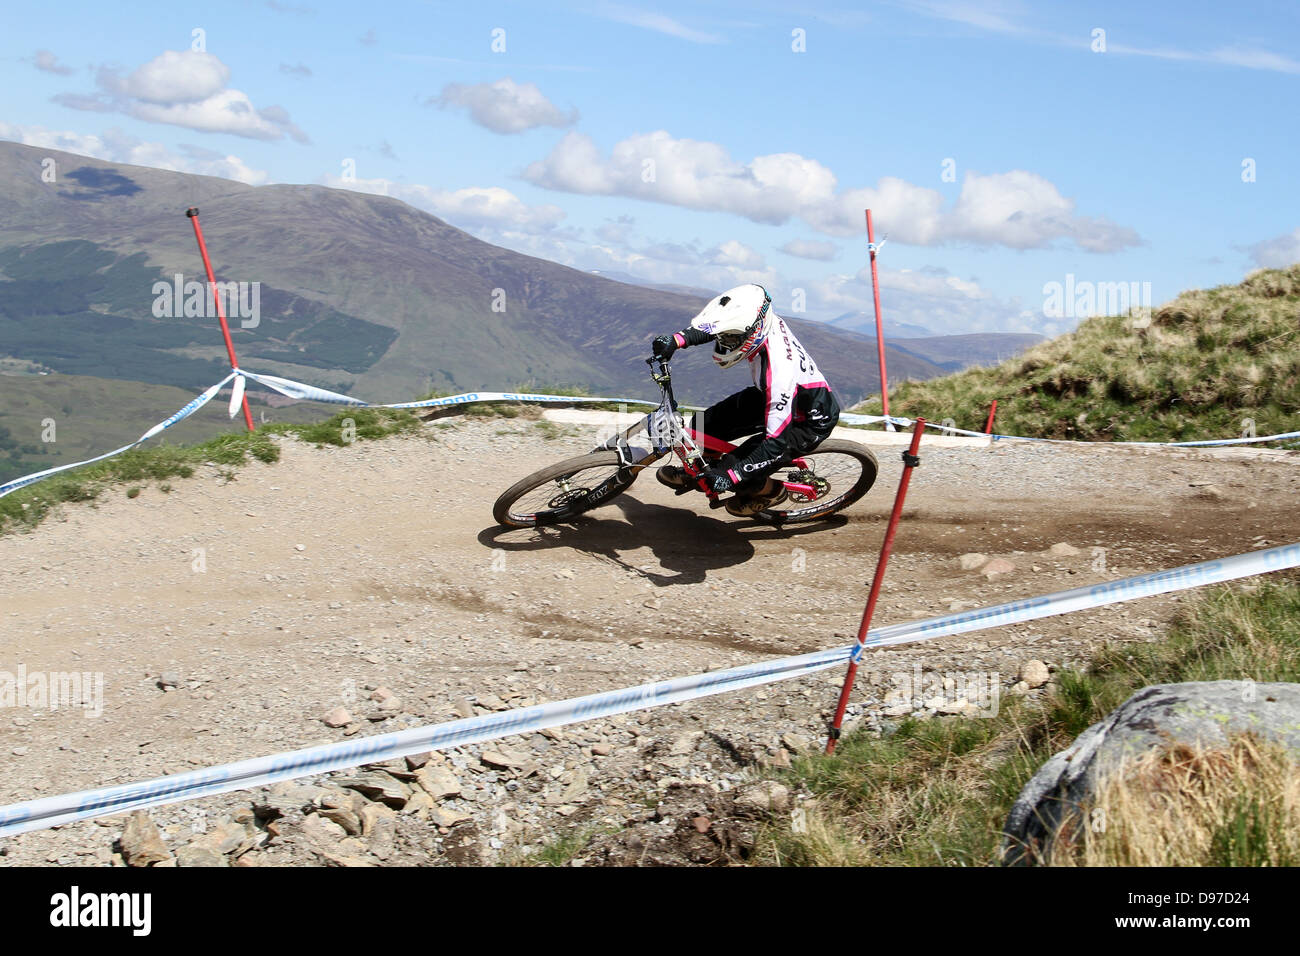 Fraser McGlone MTB Cut on the course at the World Cup Downhill, Fort William 2013 - Stock Image